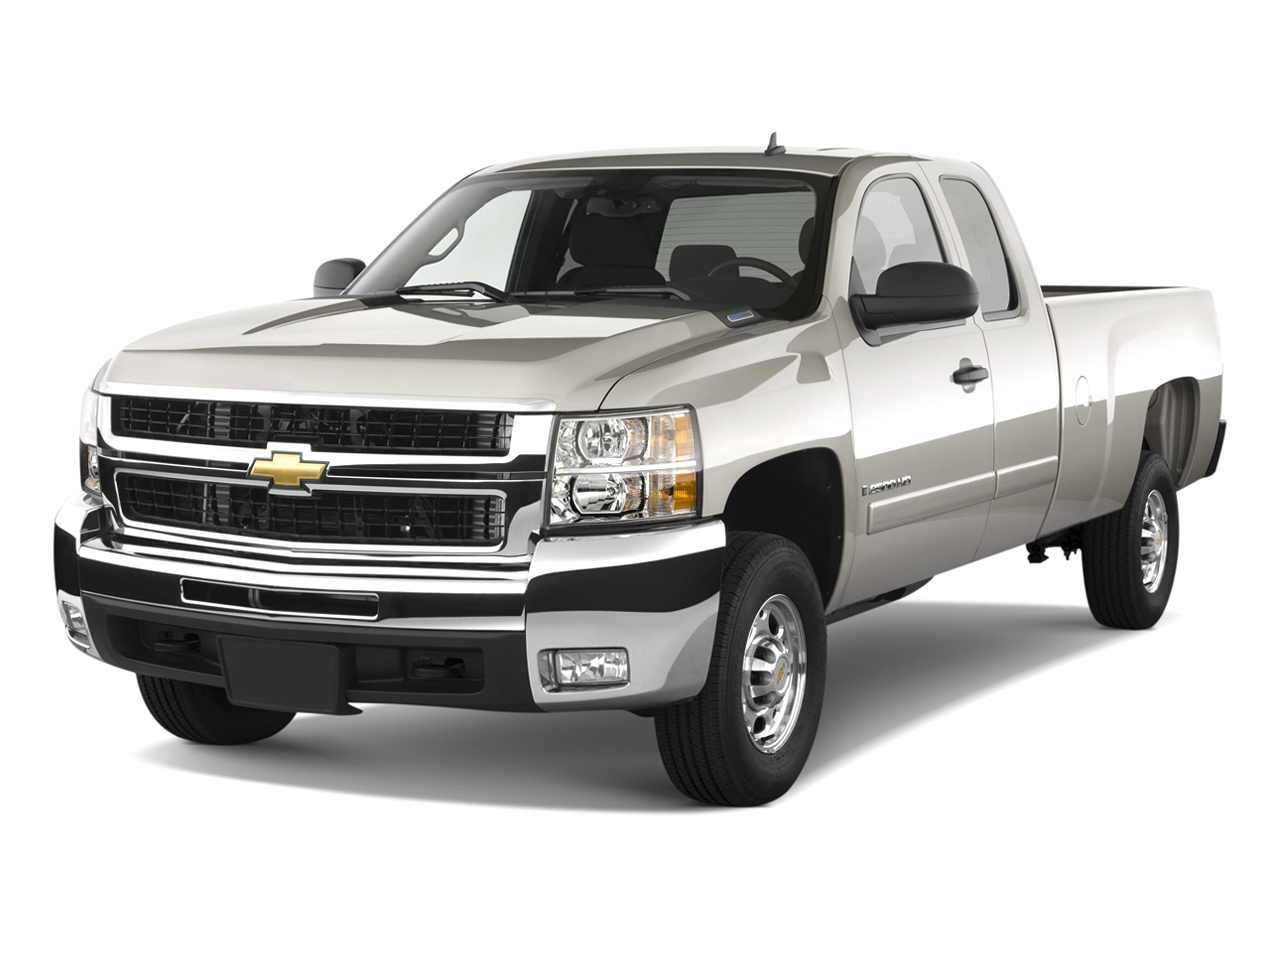 2010 Chevrolet Silverado 2500HD (Chevy) Review, Ratings, Specs, Prices, and Photos - The Car ...